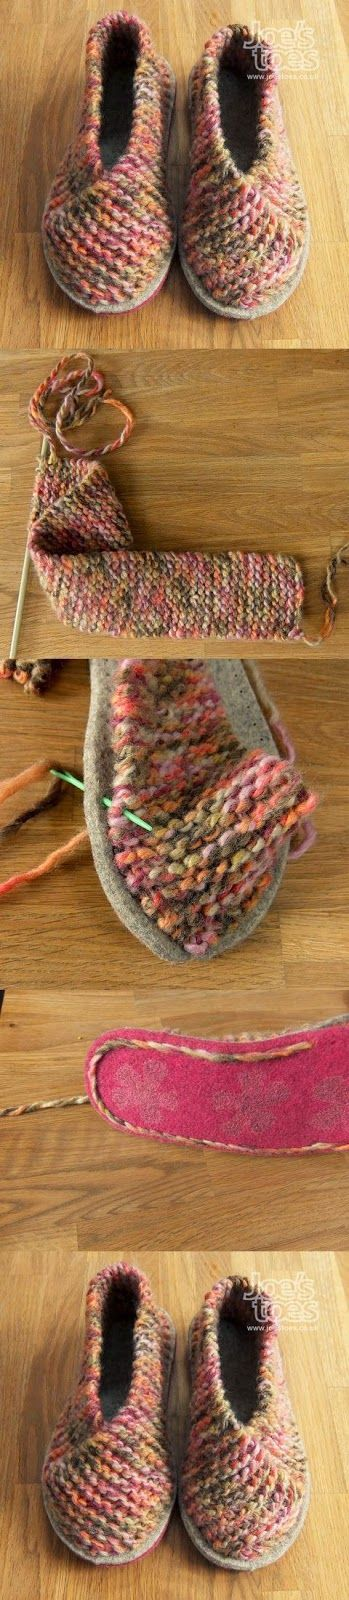 Idea:  double the soles so the bottom yarn doesn't wear out.  More stitches on the fronts fewer at the back